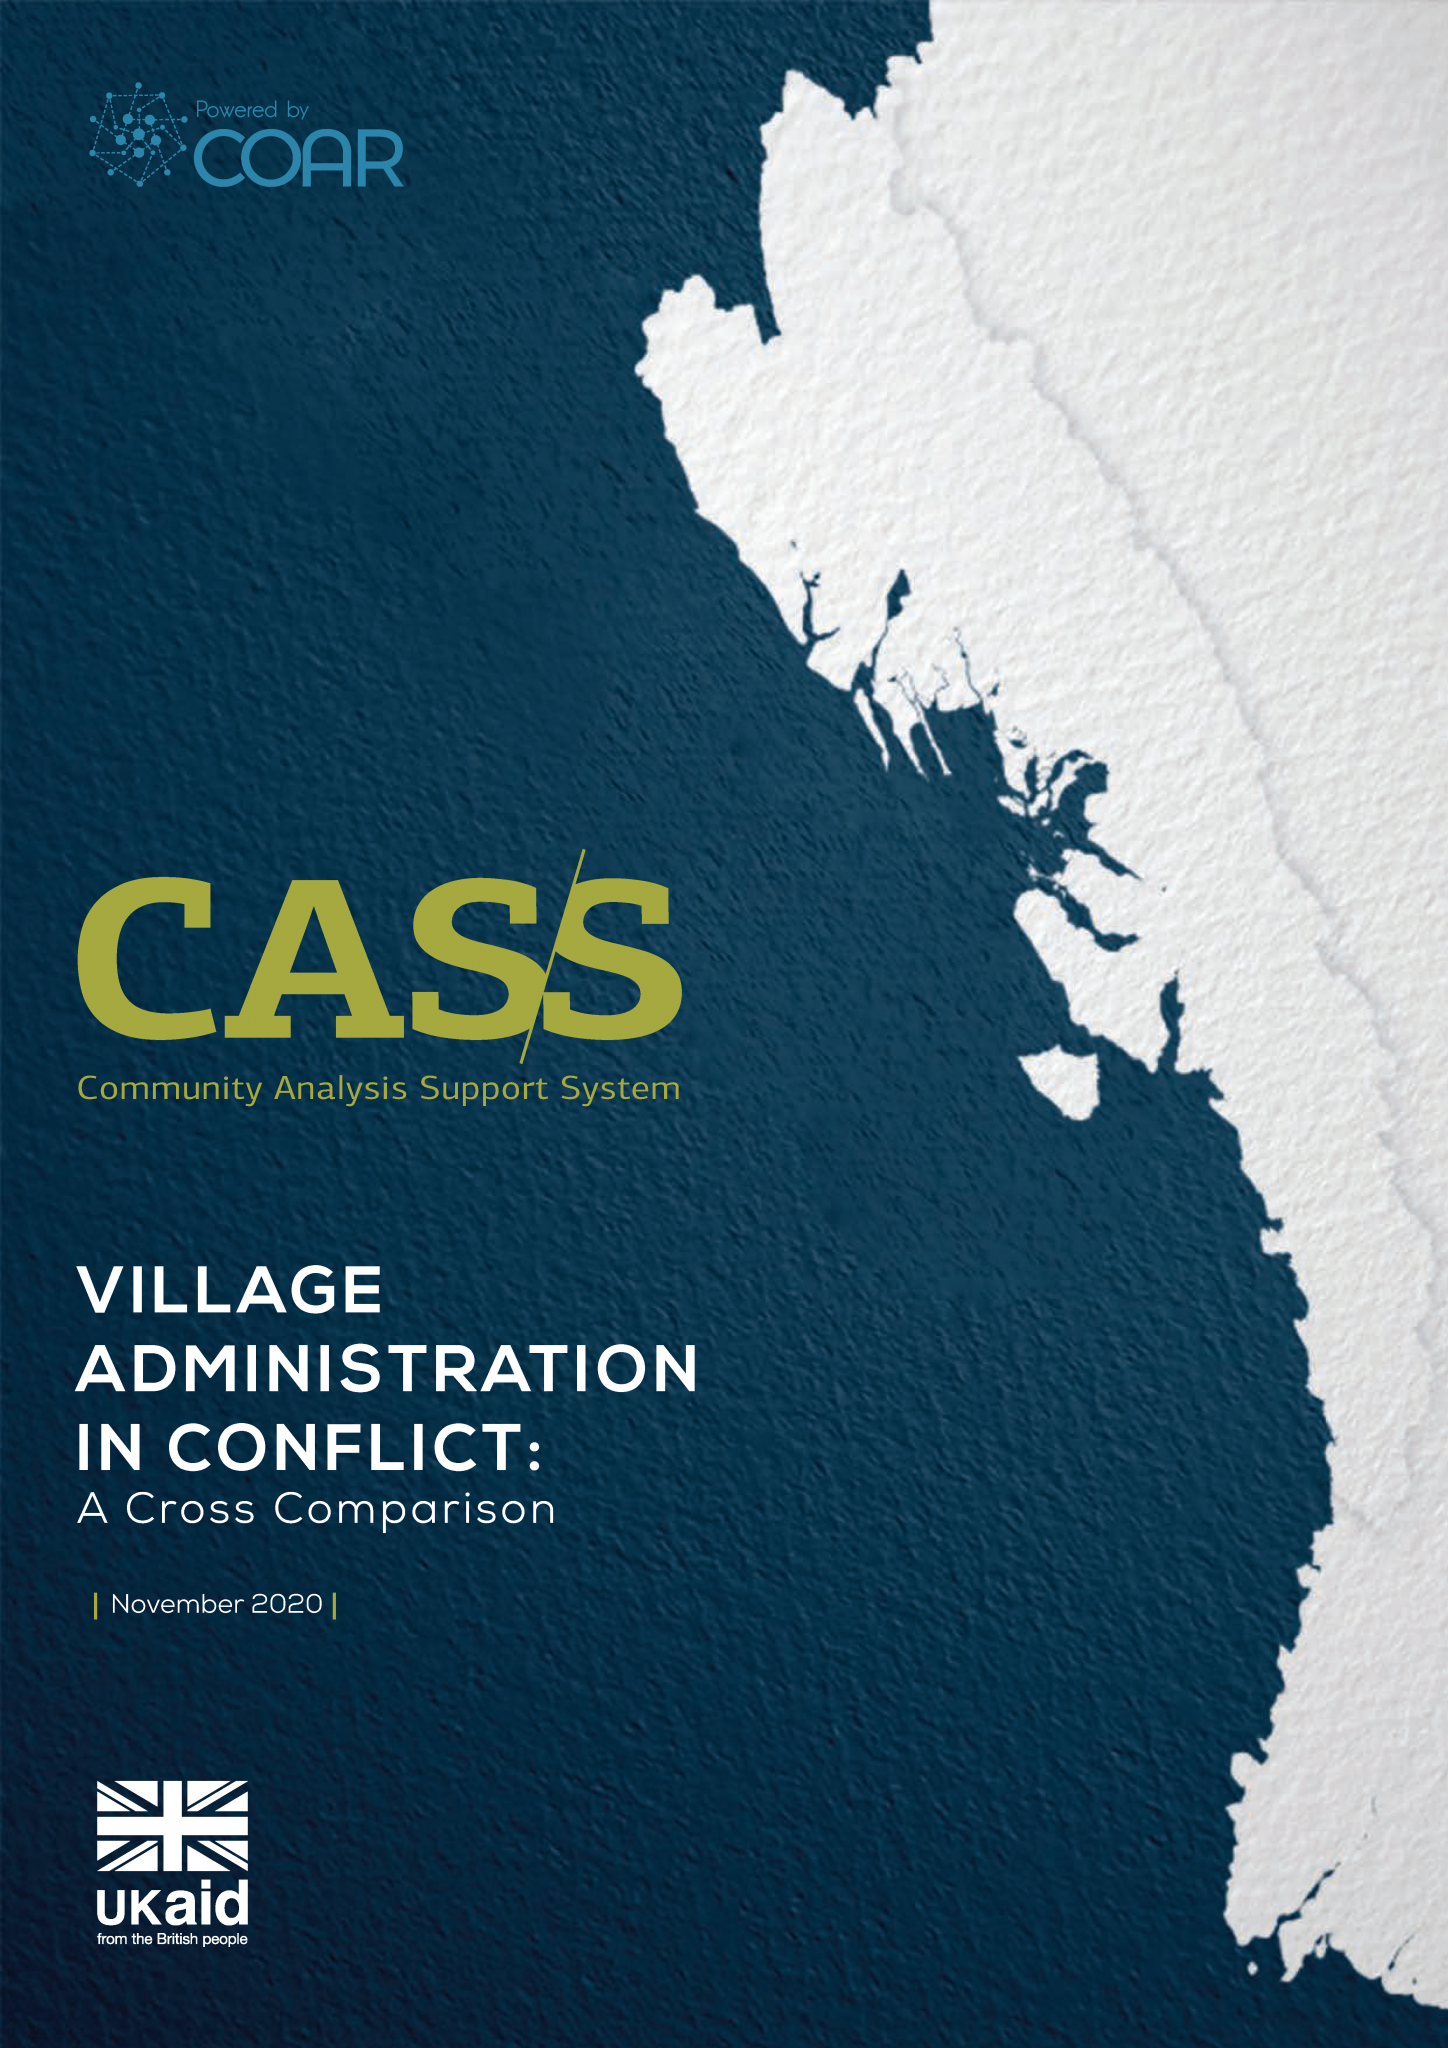 Village Administration in Conflict: A Cross Comparison